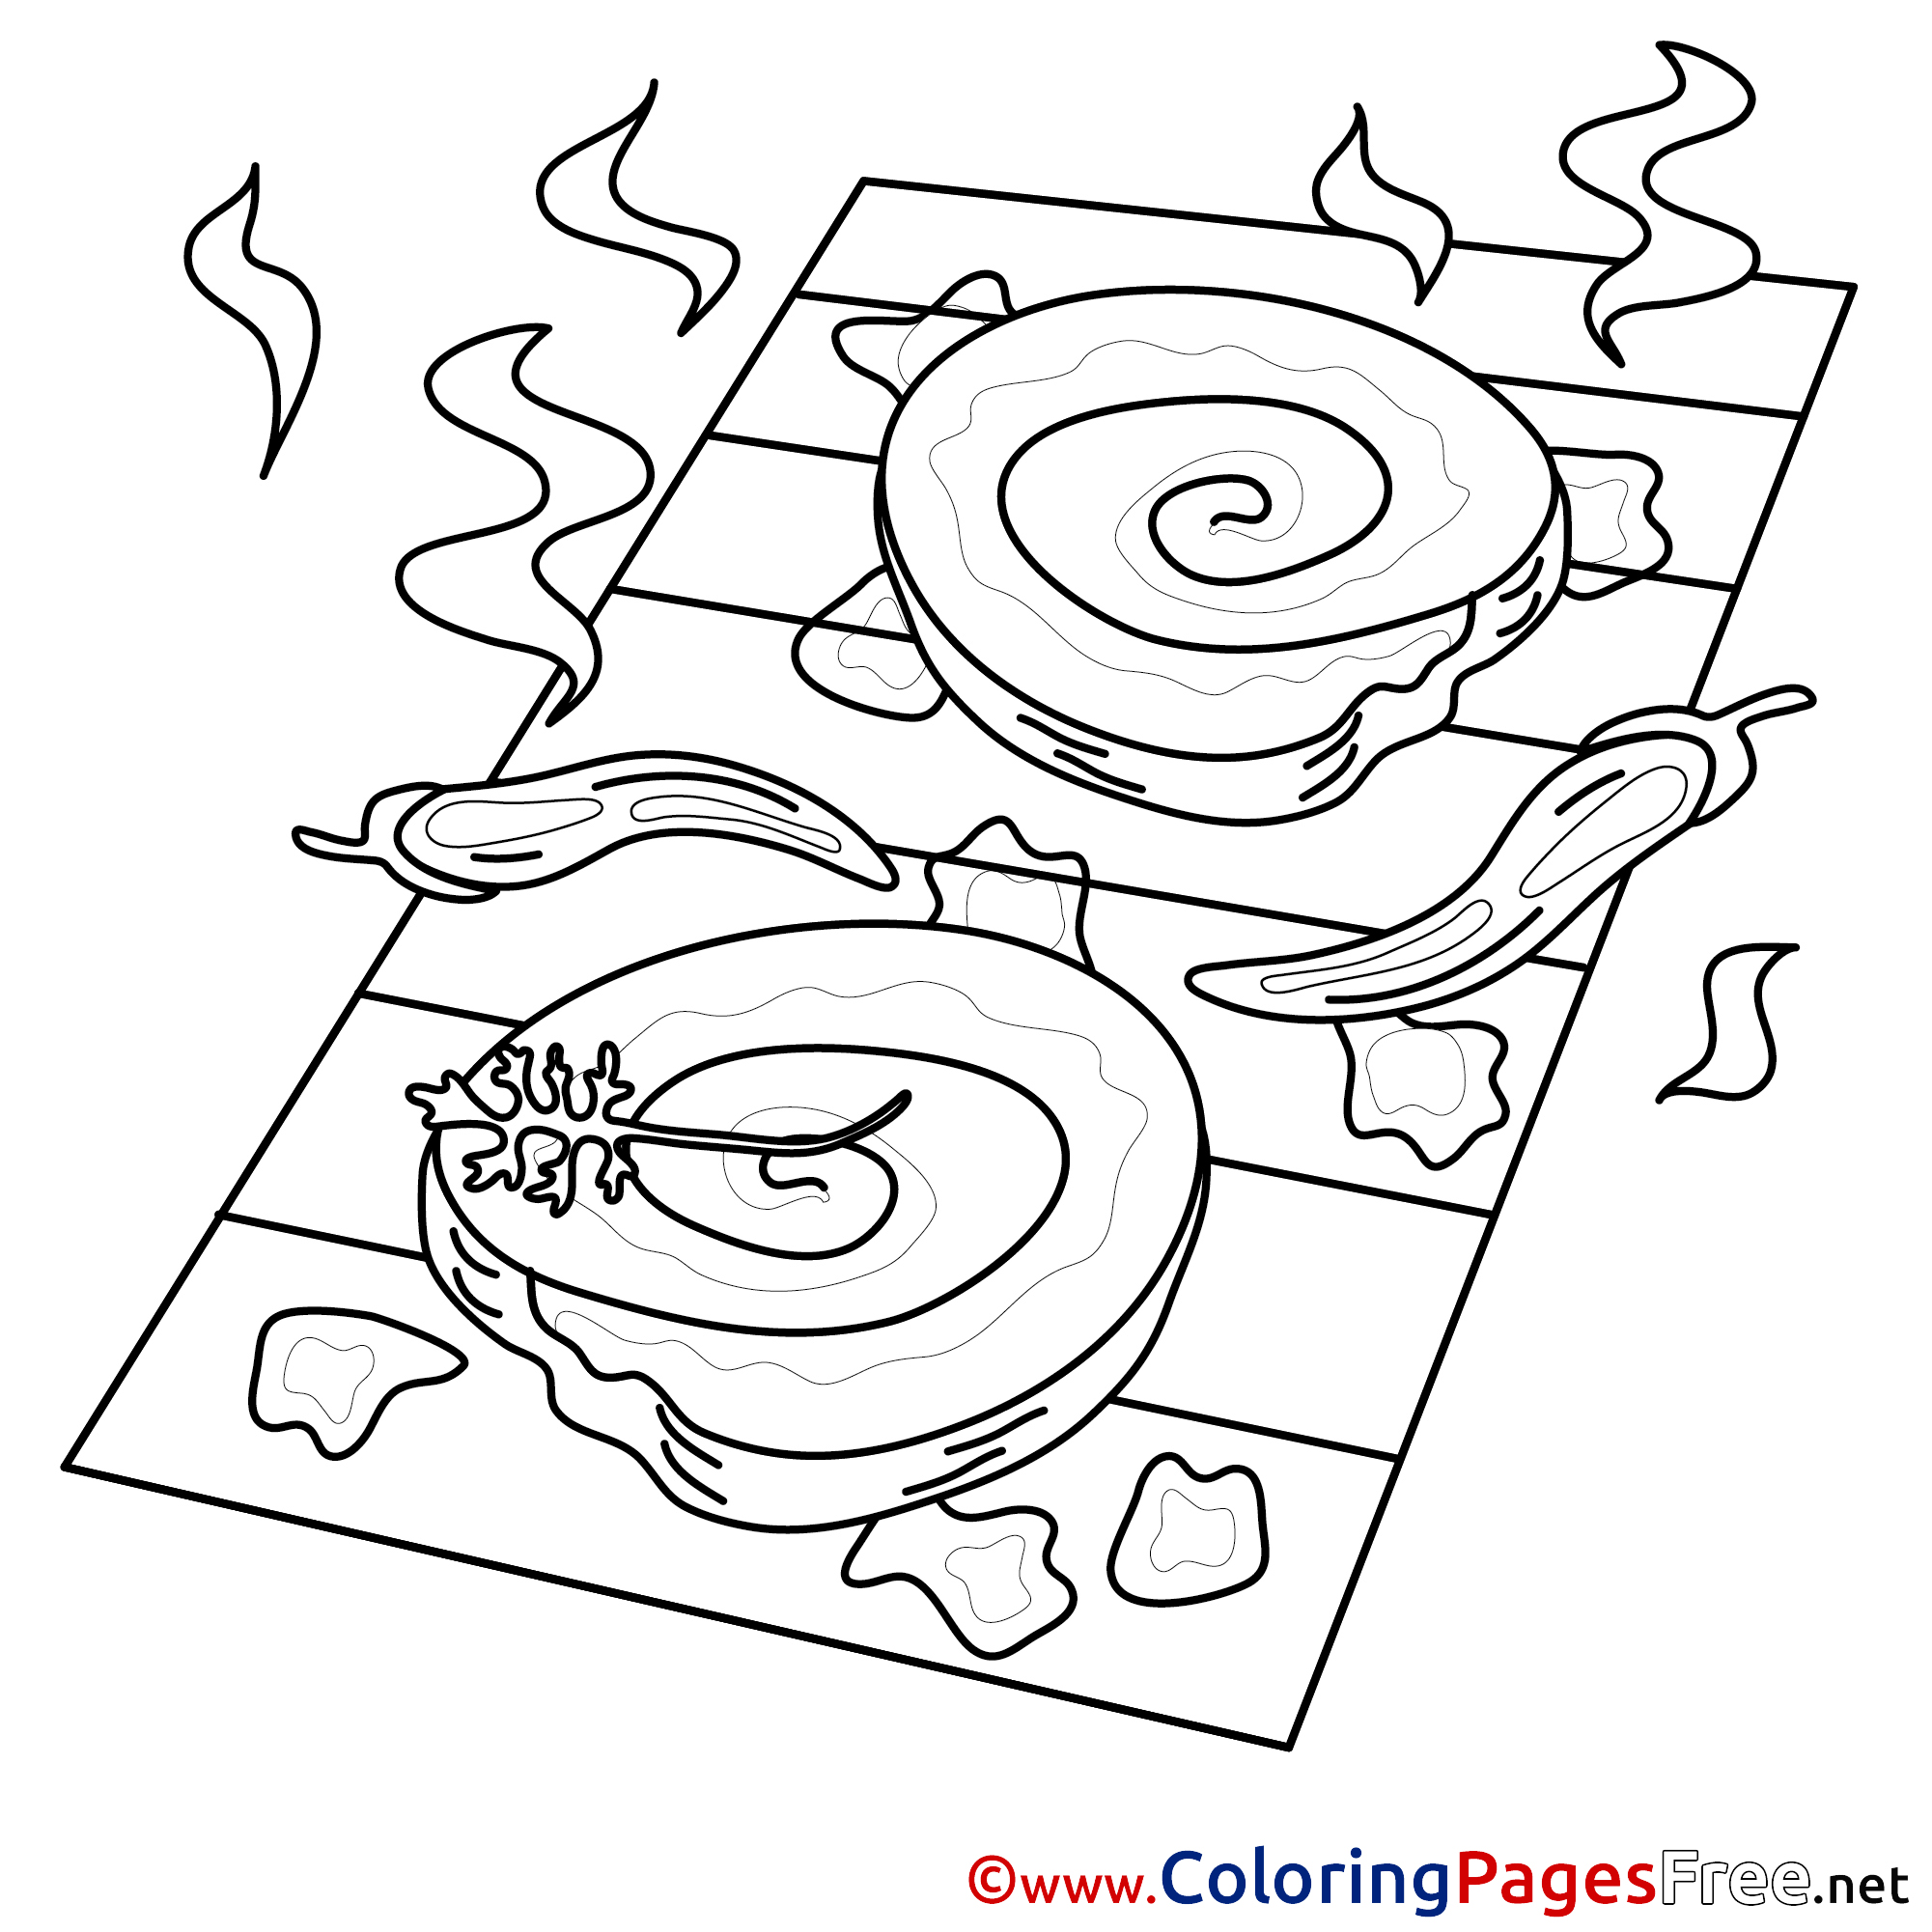 grill coloring page grill free colouring page download page grill coloring